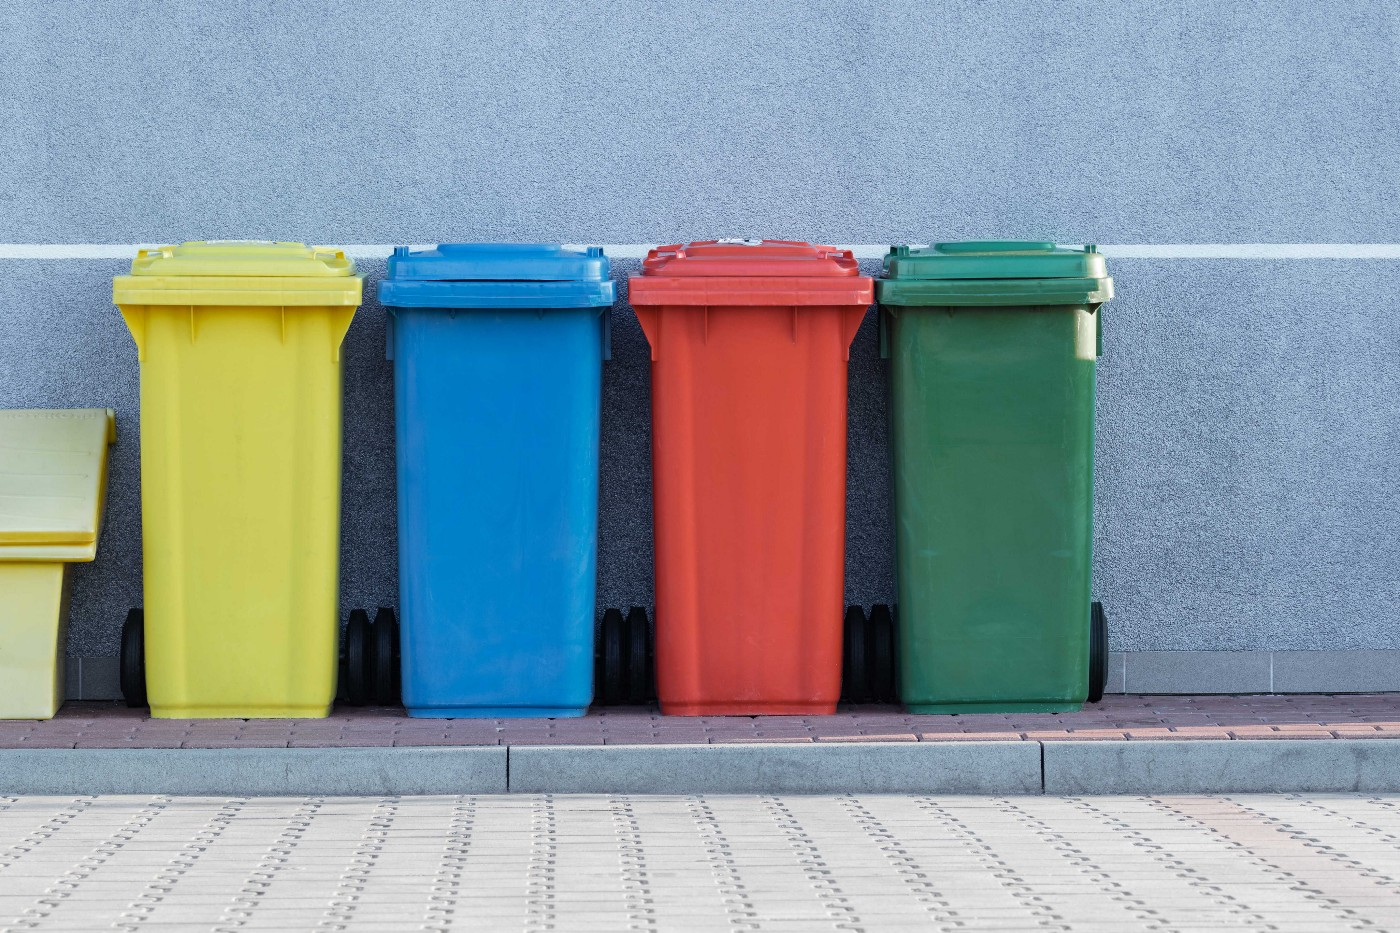 four coloured waste bins in a row